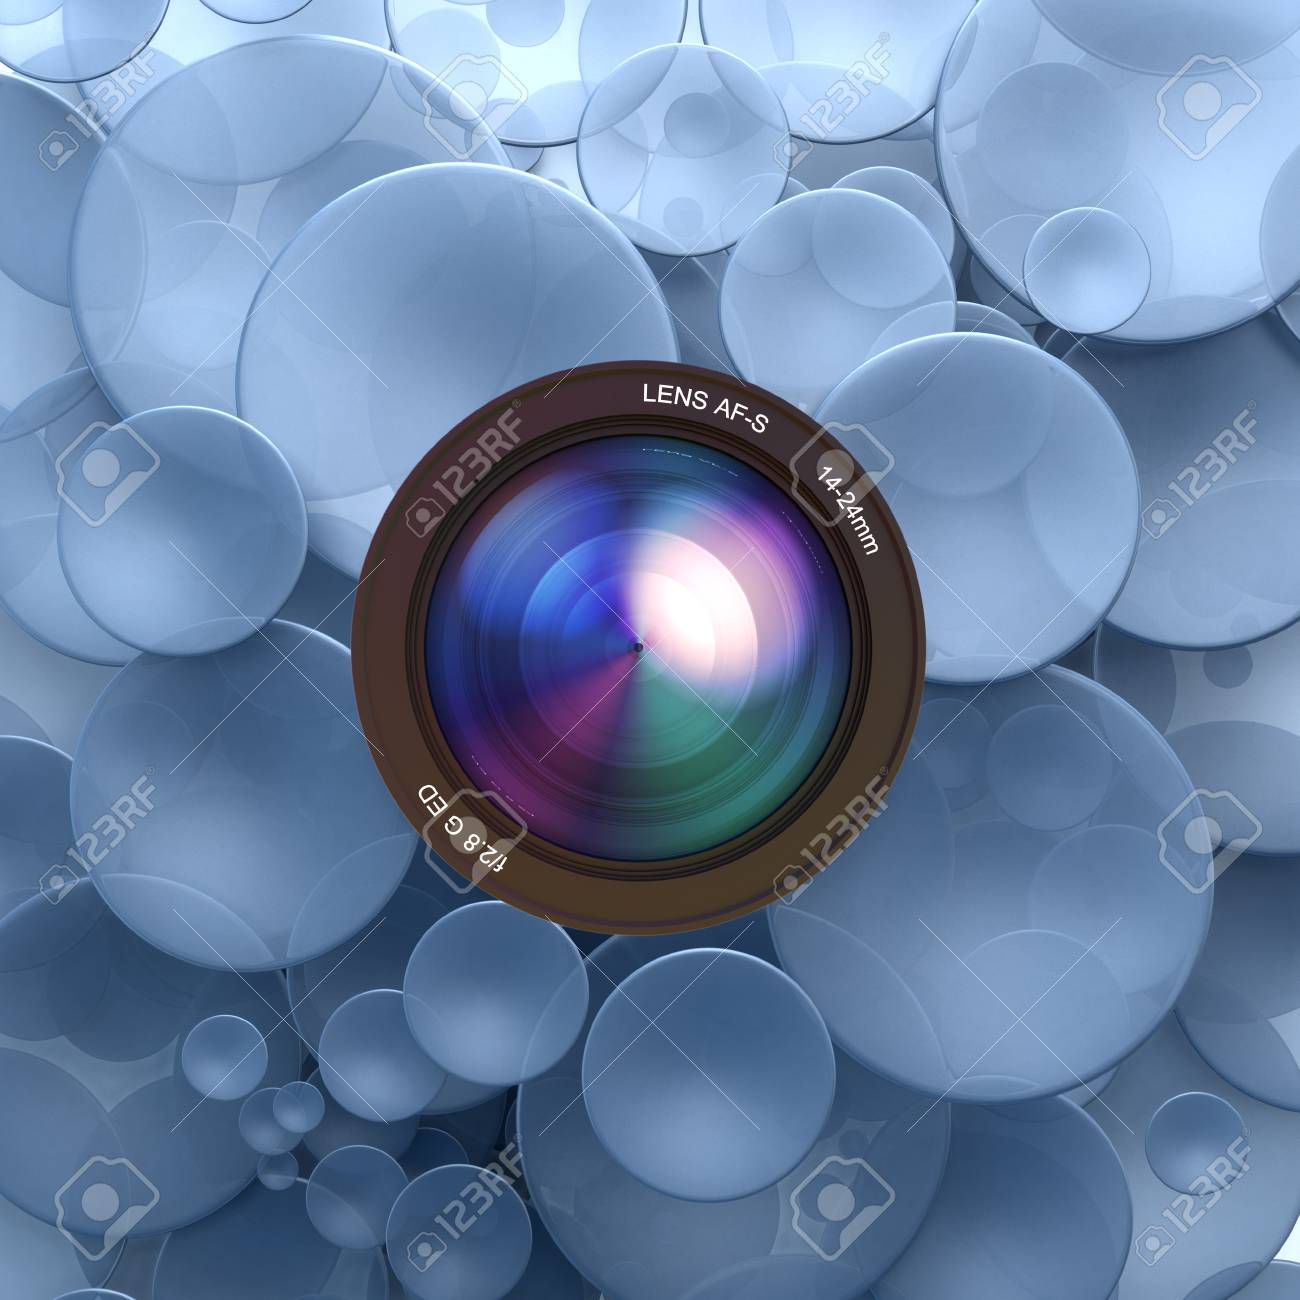 Blue disks and a camera lens Stock Photo - 27103182